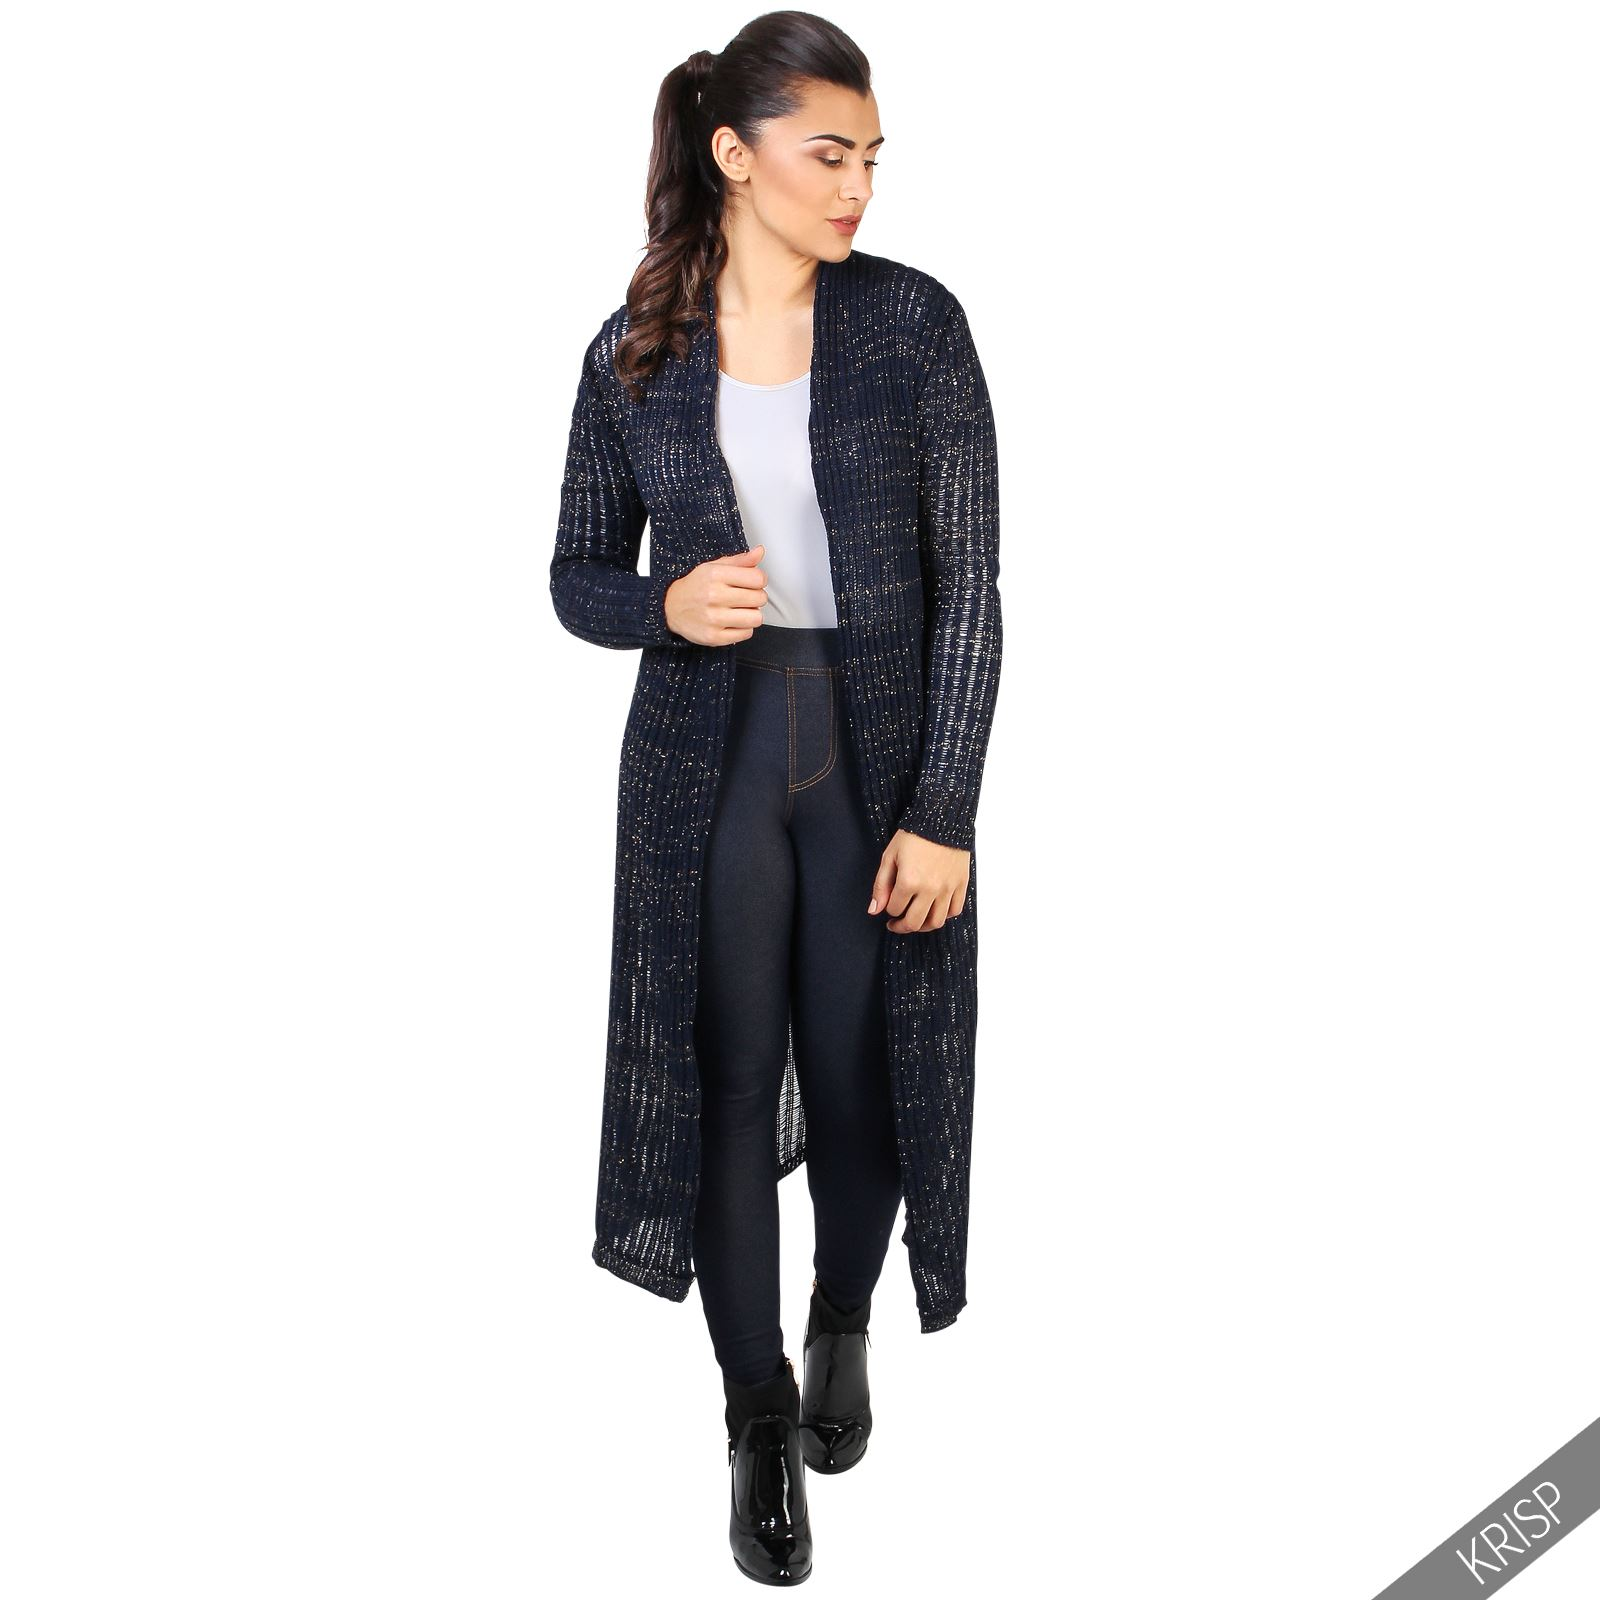 femmes cardigan gilet long tricot moyen paillette veste. Black Bedroom Furniture Sets. Home Design Ideas